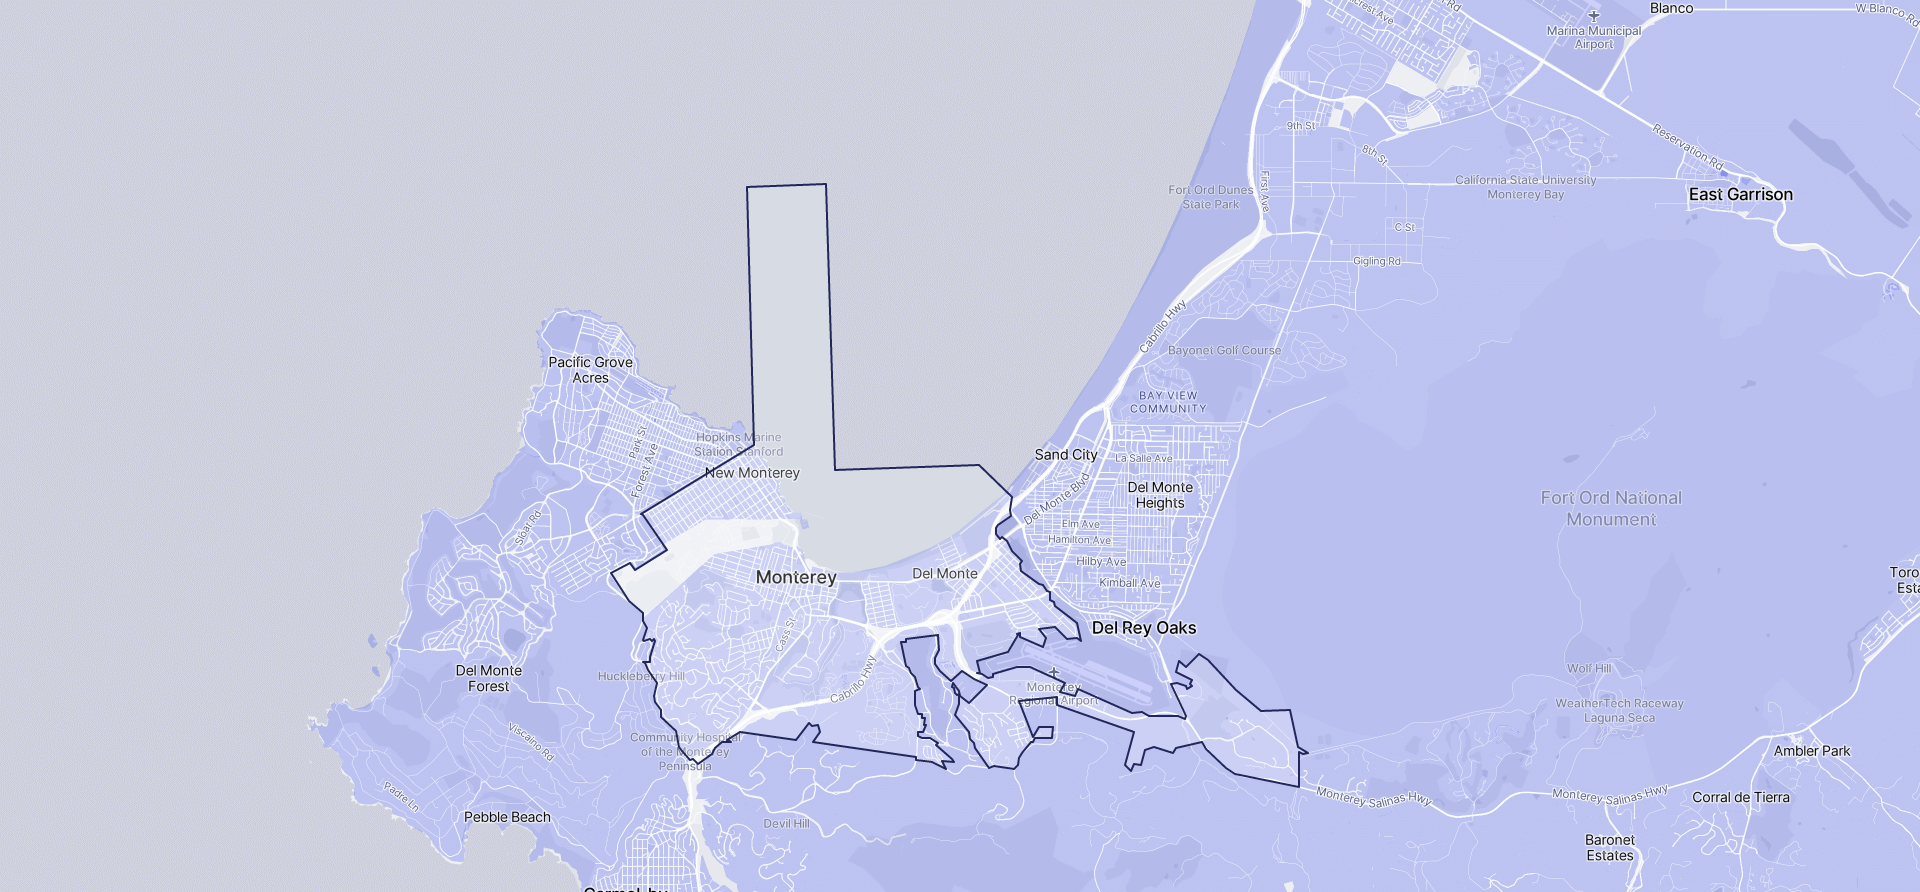 Image of Monterey boundaries on a map.